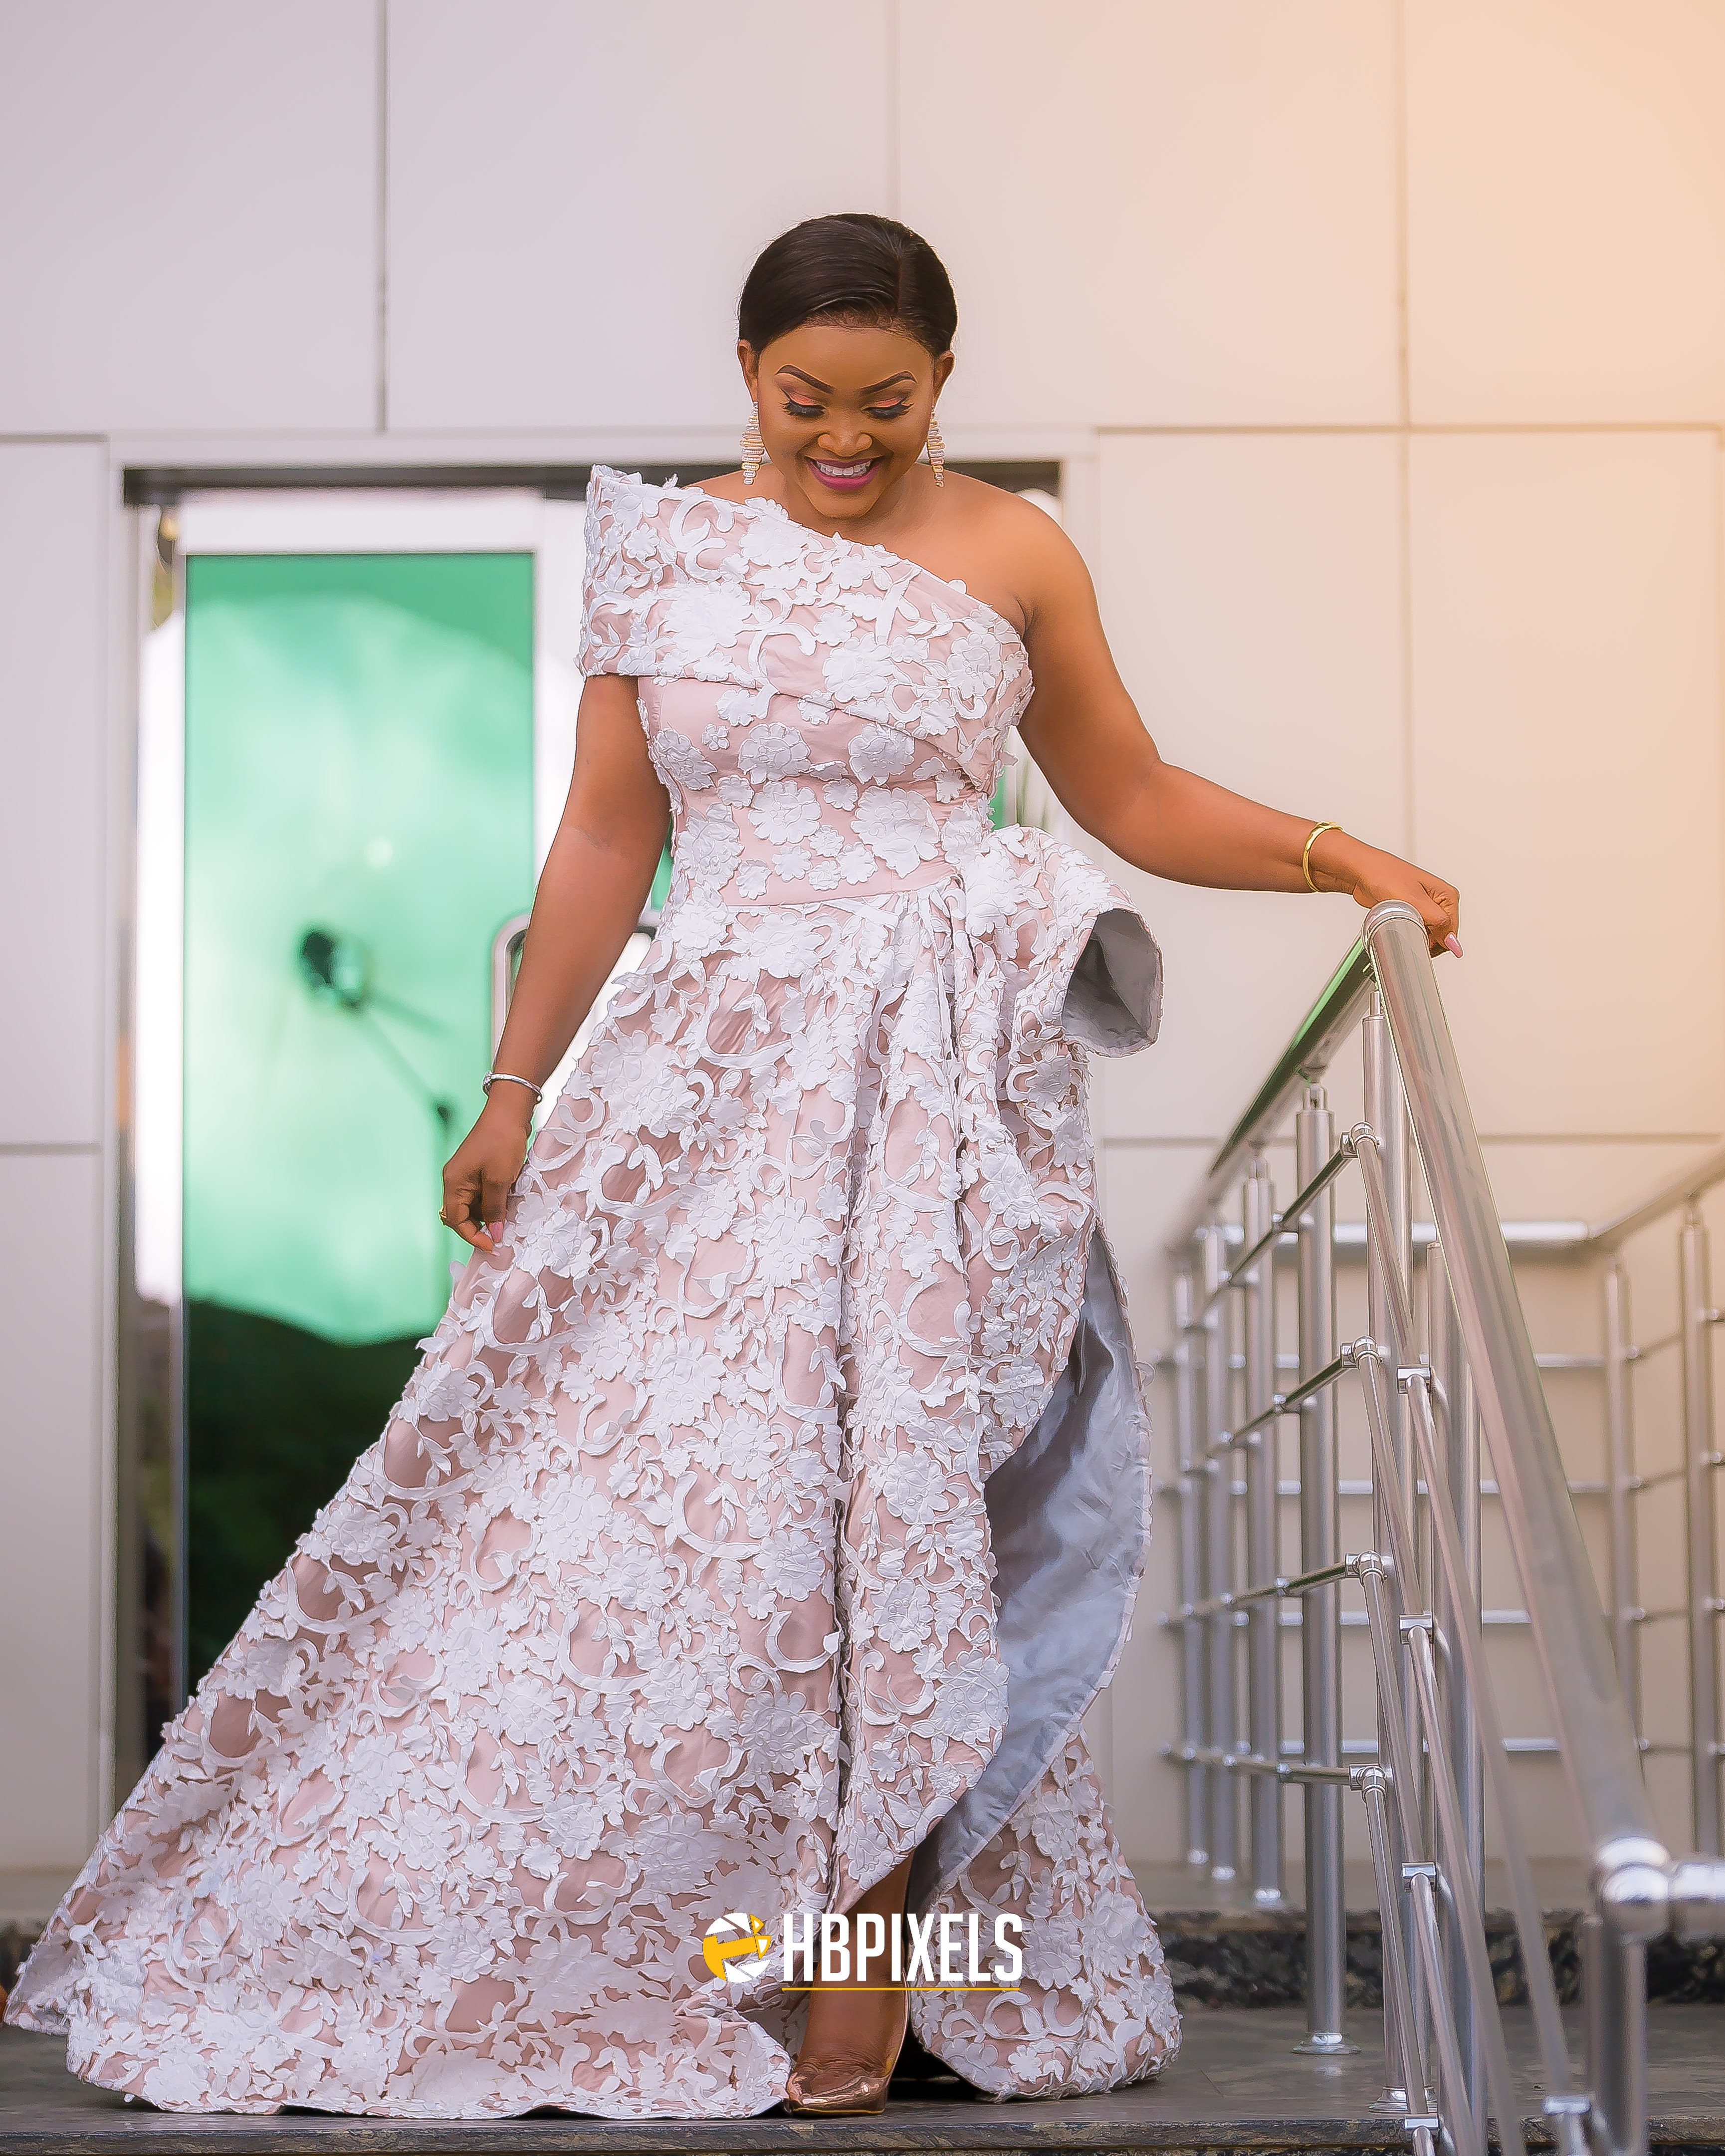 Adorable Photos From Actress, Mercy Aigbe's 40th Birthday.